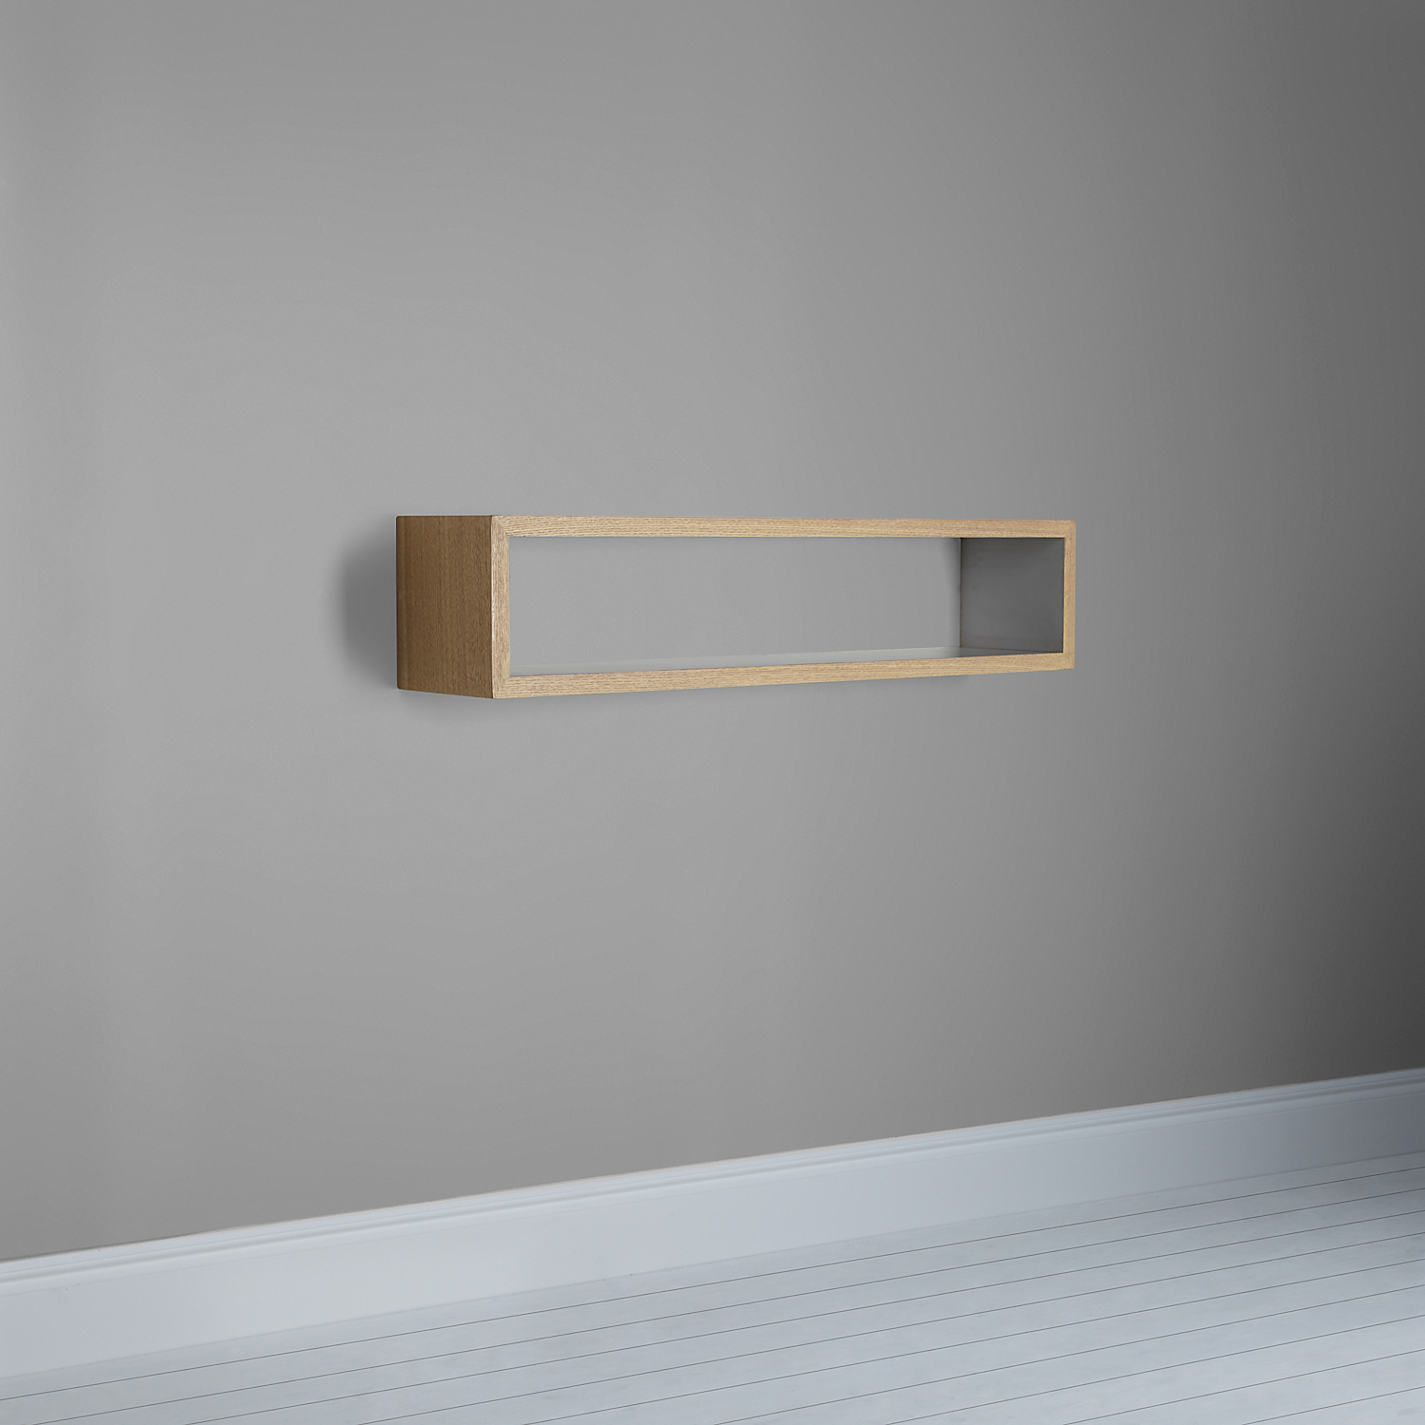 Bathroom wall shelf -  Buy Design Project By John Lewis No 008 Rectangular Bathroom Wall Shelf Online At Johnlewis